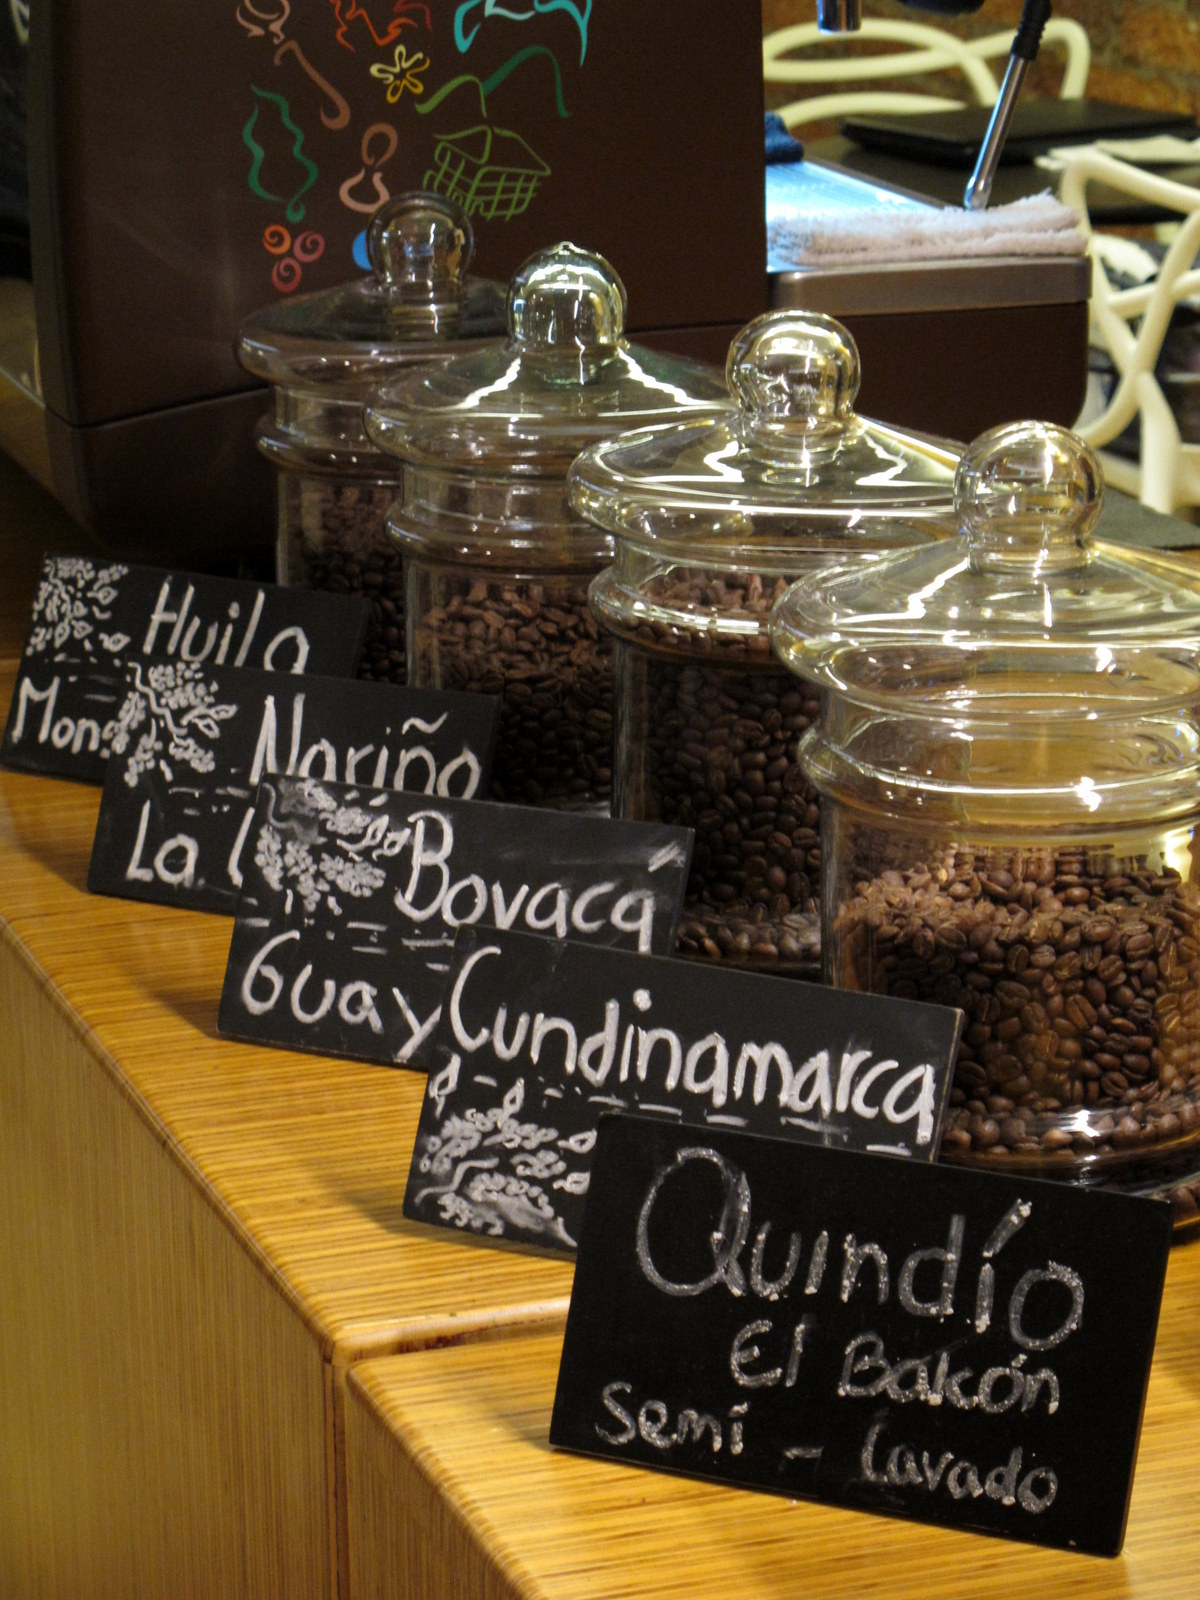 A line of Colombia's finest